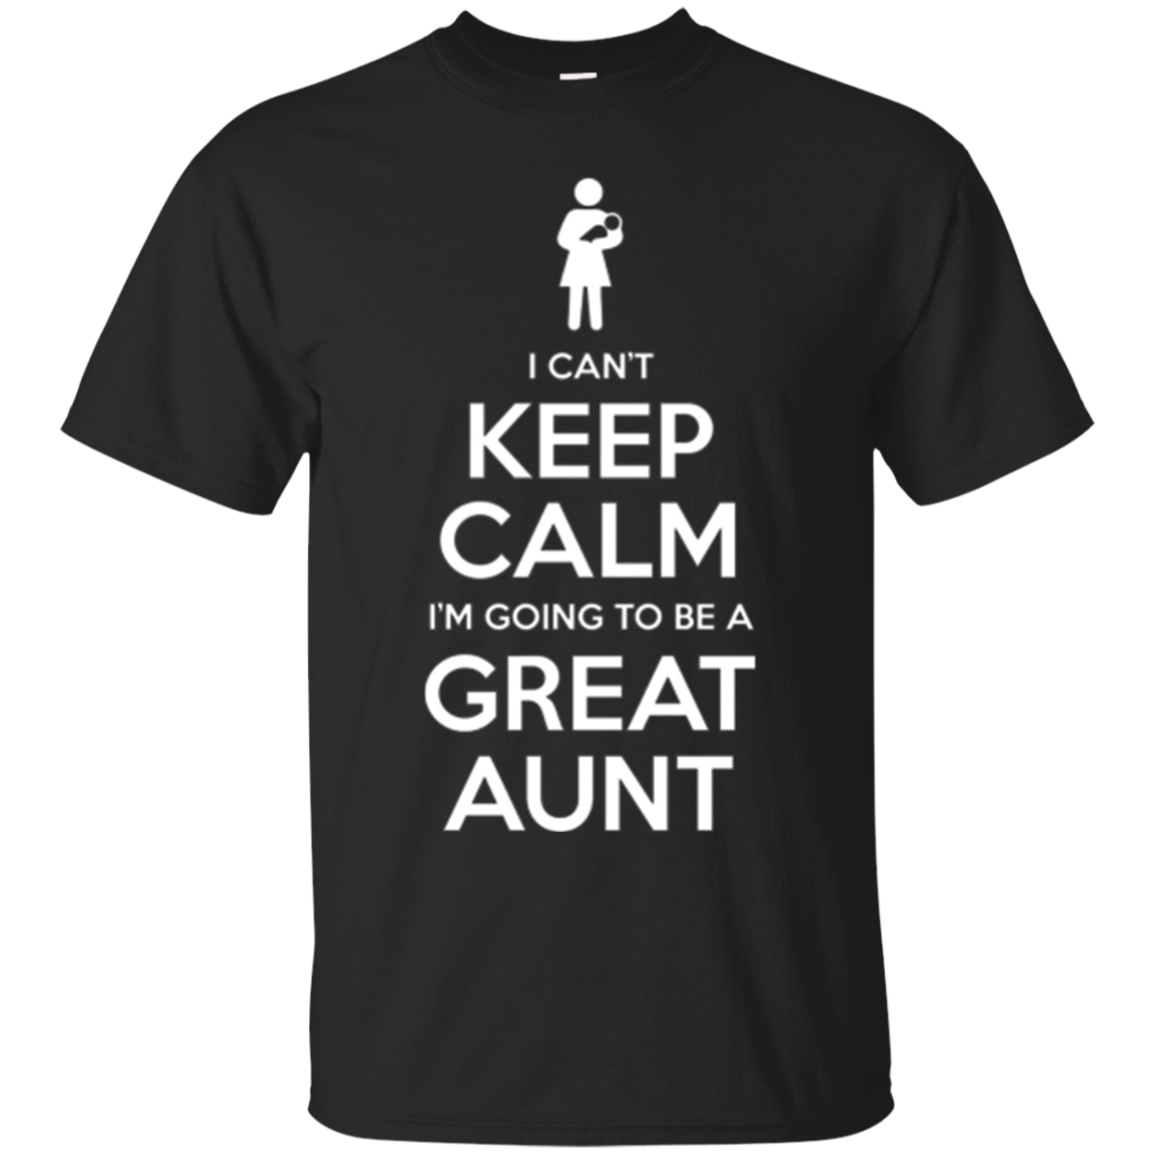 Can't Keep Calm Great Aunt Baby Announcement Tee